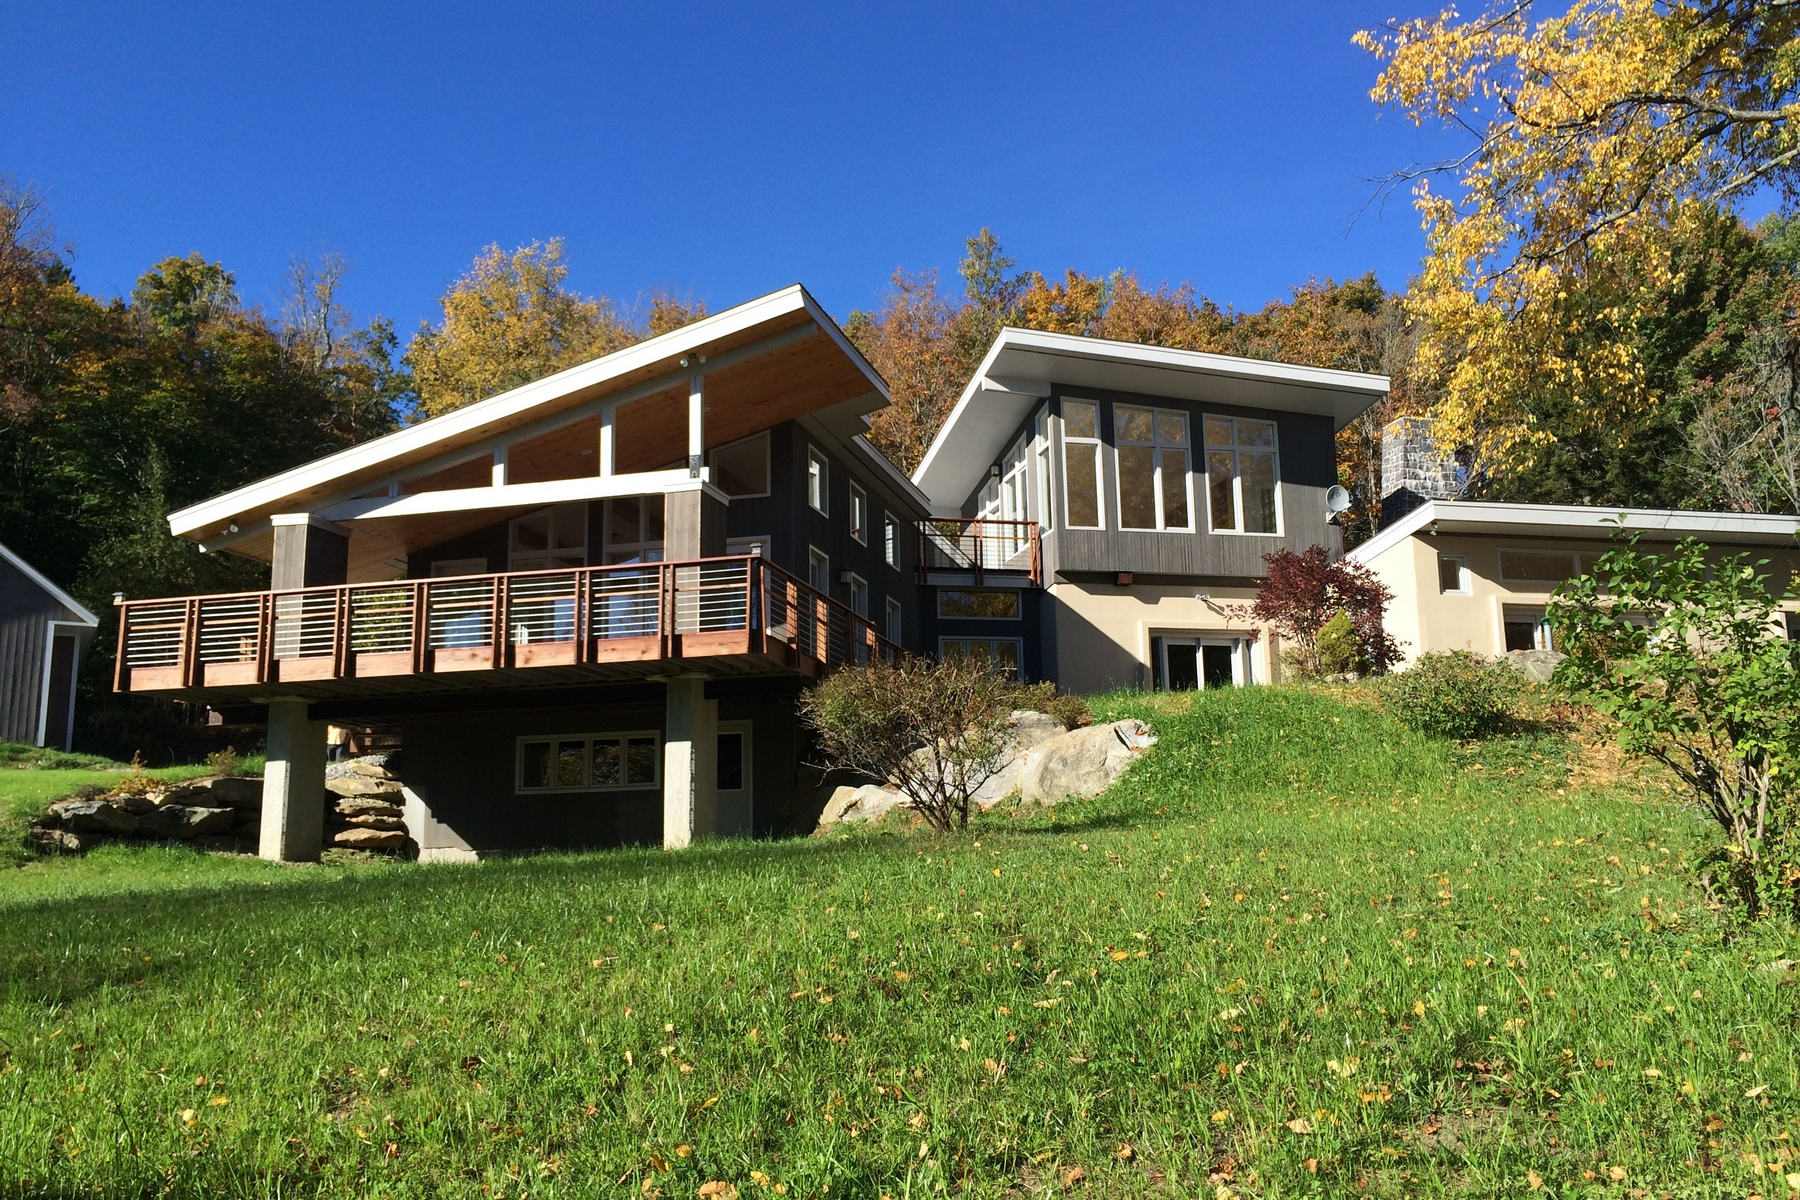 Casa Unifamiliar por un Venta en 30+ Acre Private Estate 813 Ccc Rd Shrewsbury, Vermont, 05738 Estados Unidos